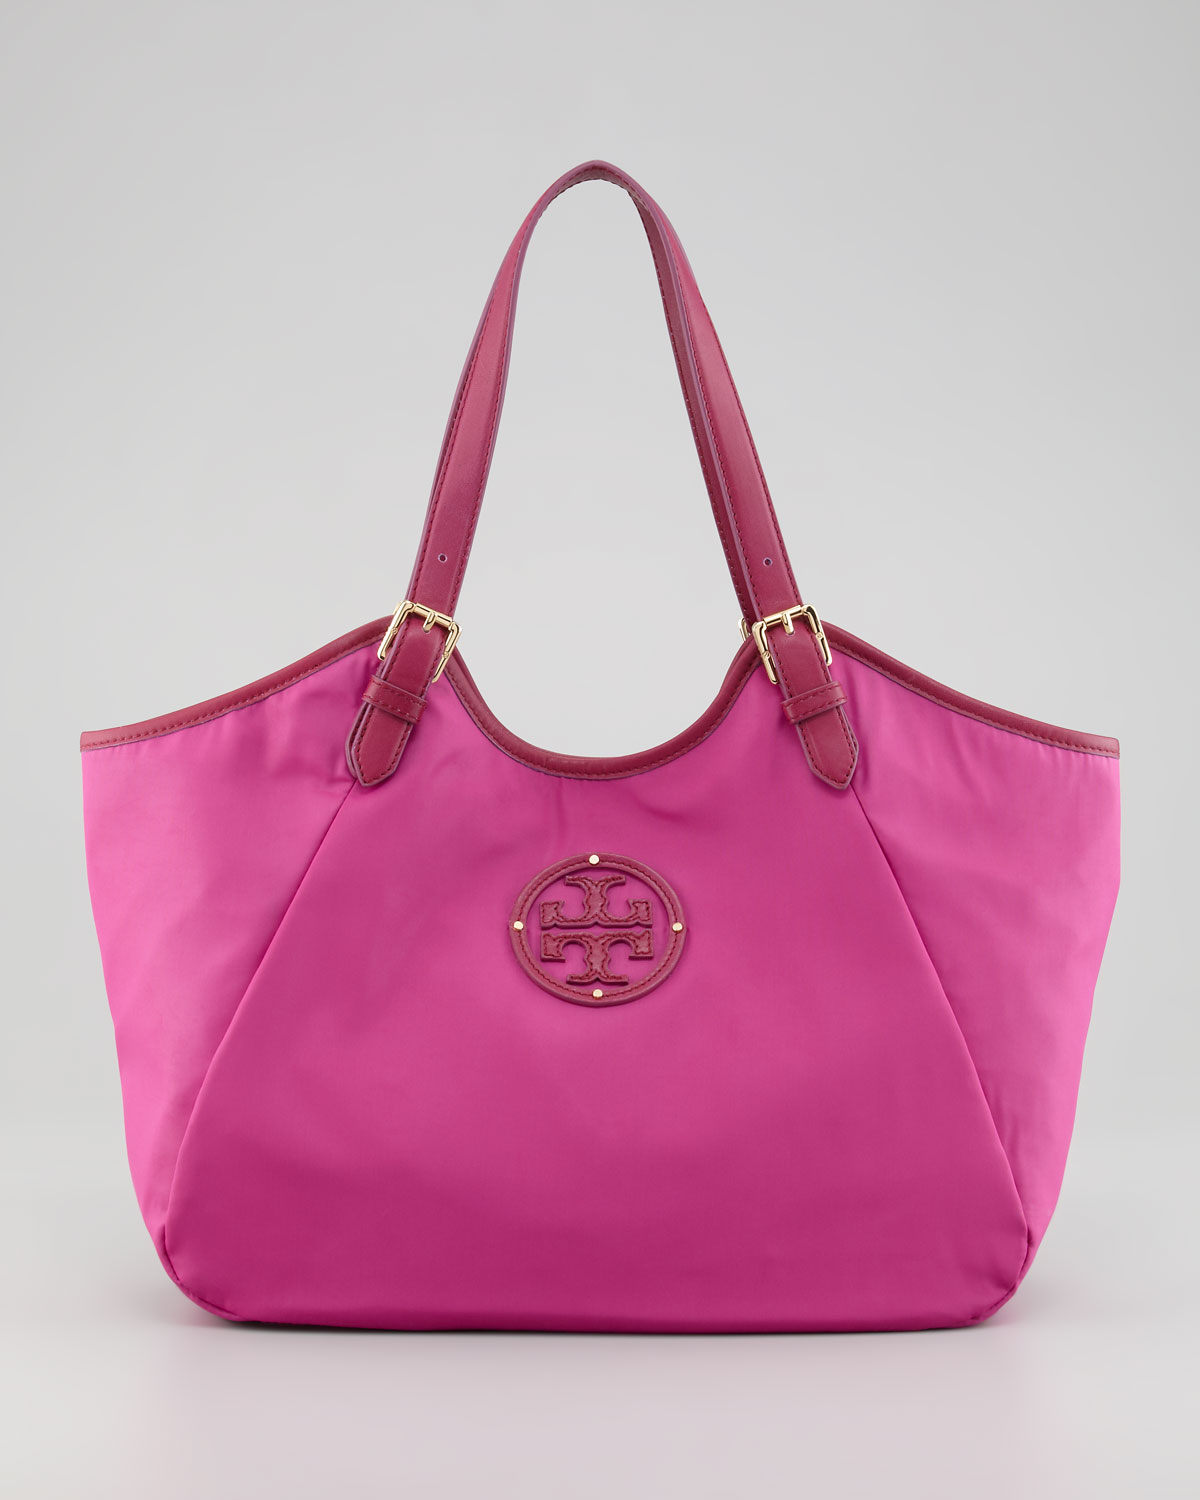 Tory burch Logo Techfabric Slouch Hobo Bag in Pink | Lyst